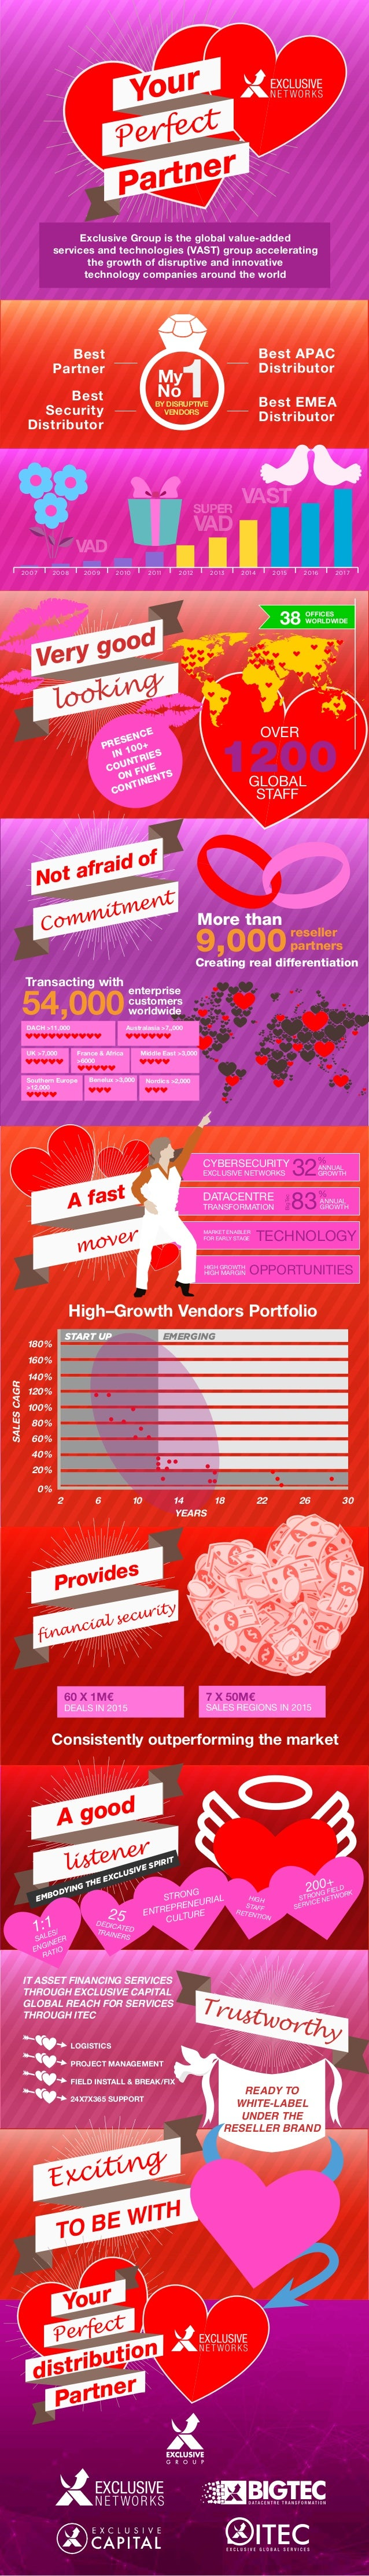 OFFICES WORLDWIDE38 Consistently outperforming the market 60 X 1M€ DEALS IN 2015 7 X 50M€ SALES REGIONS IN 2015 TECHNOLOGY...